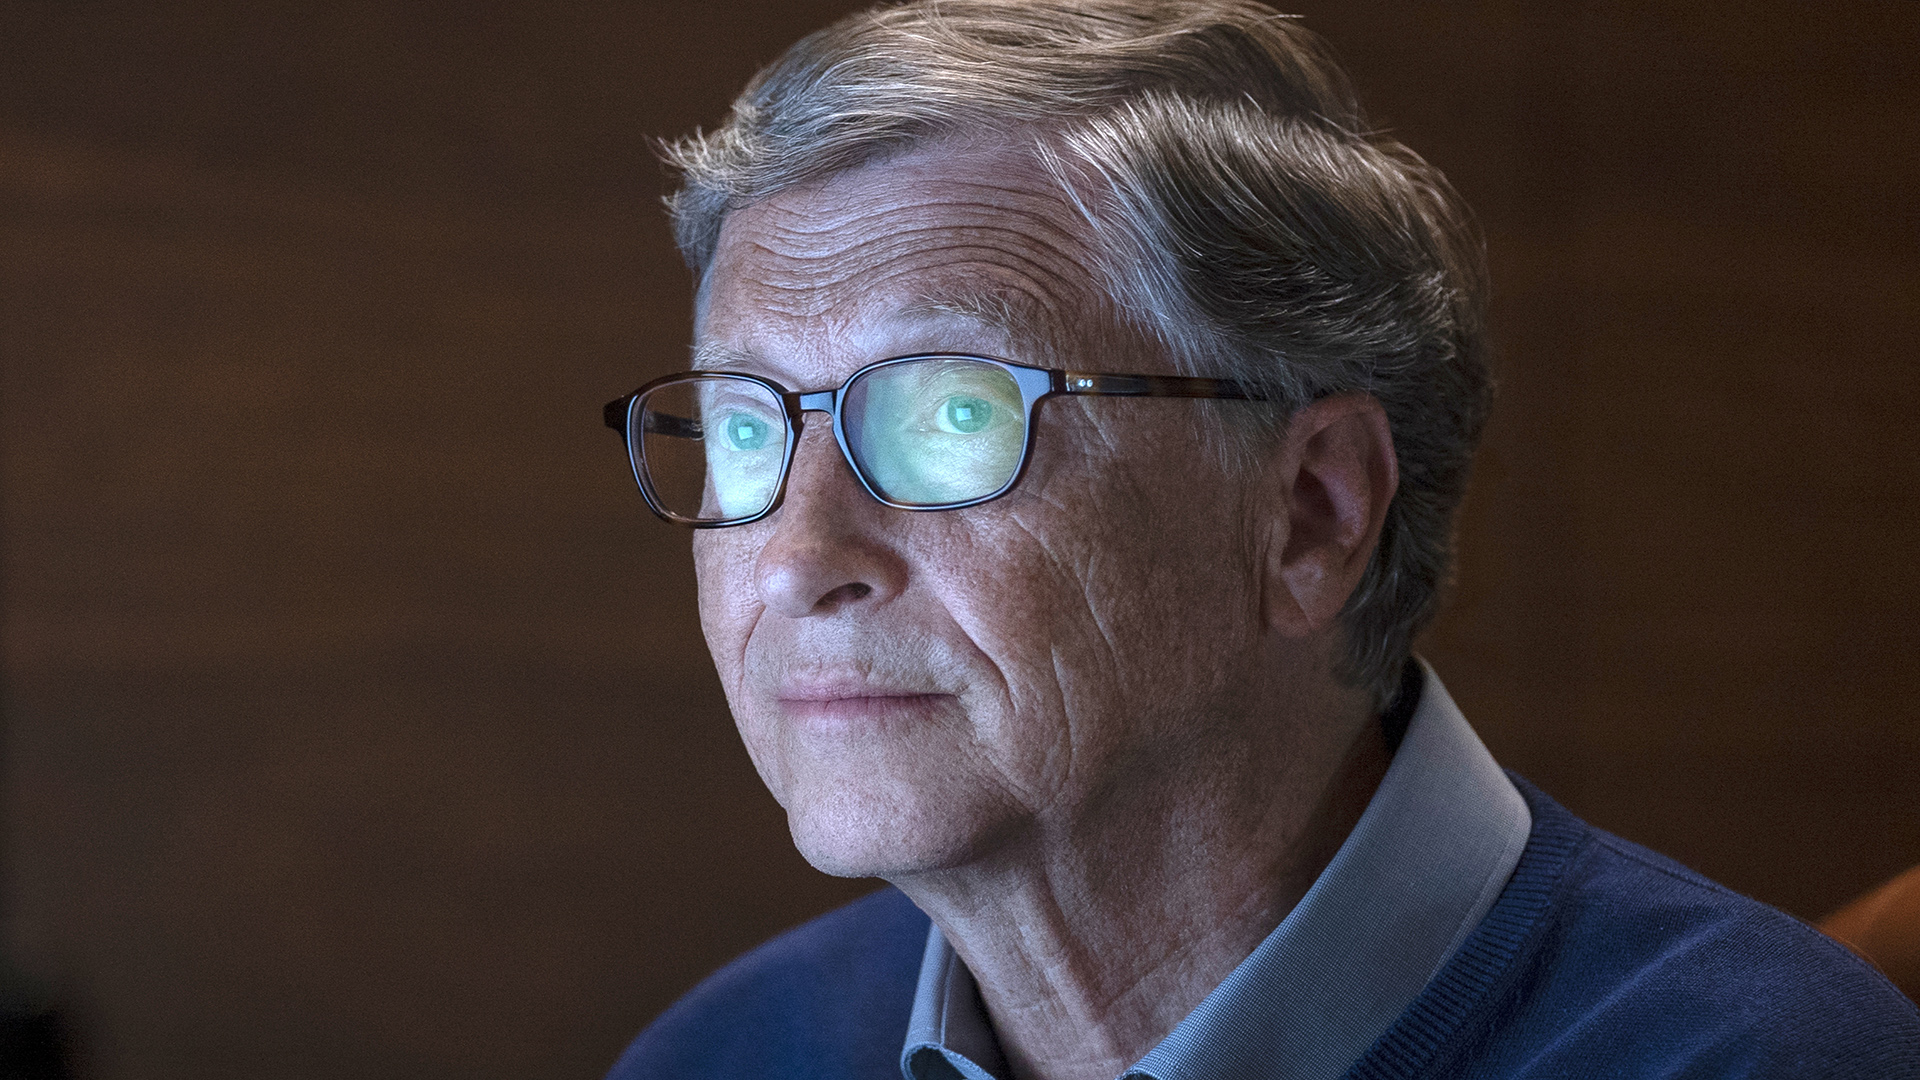 Go ahead, dive inside the mind of Bill Gates, but strap in